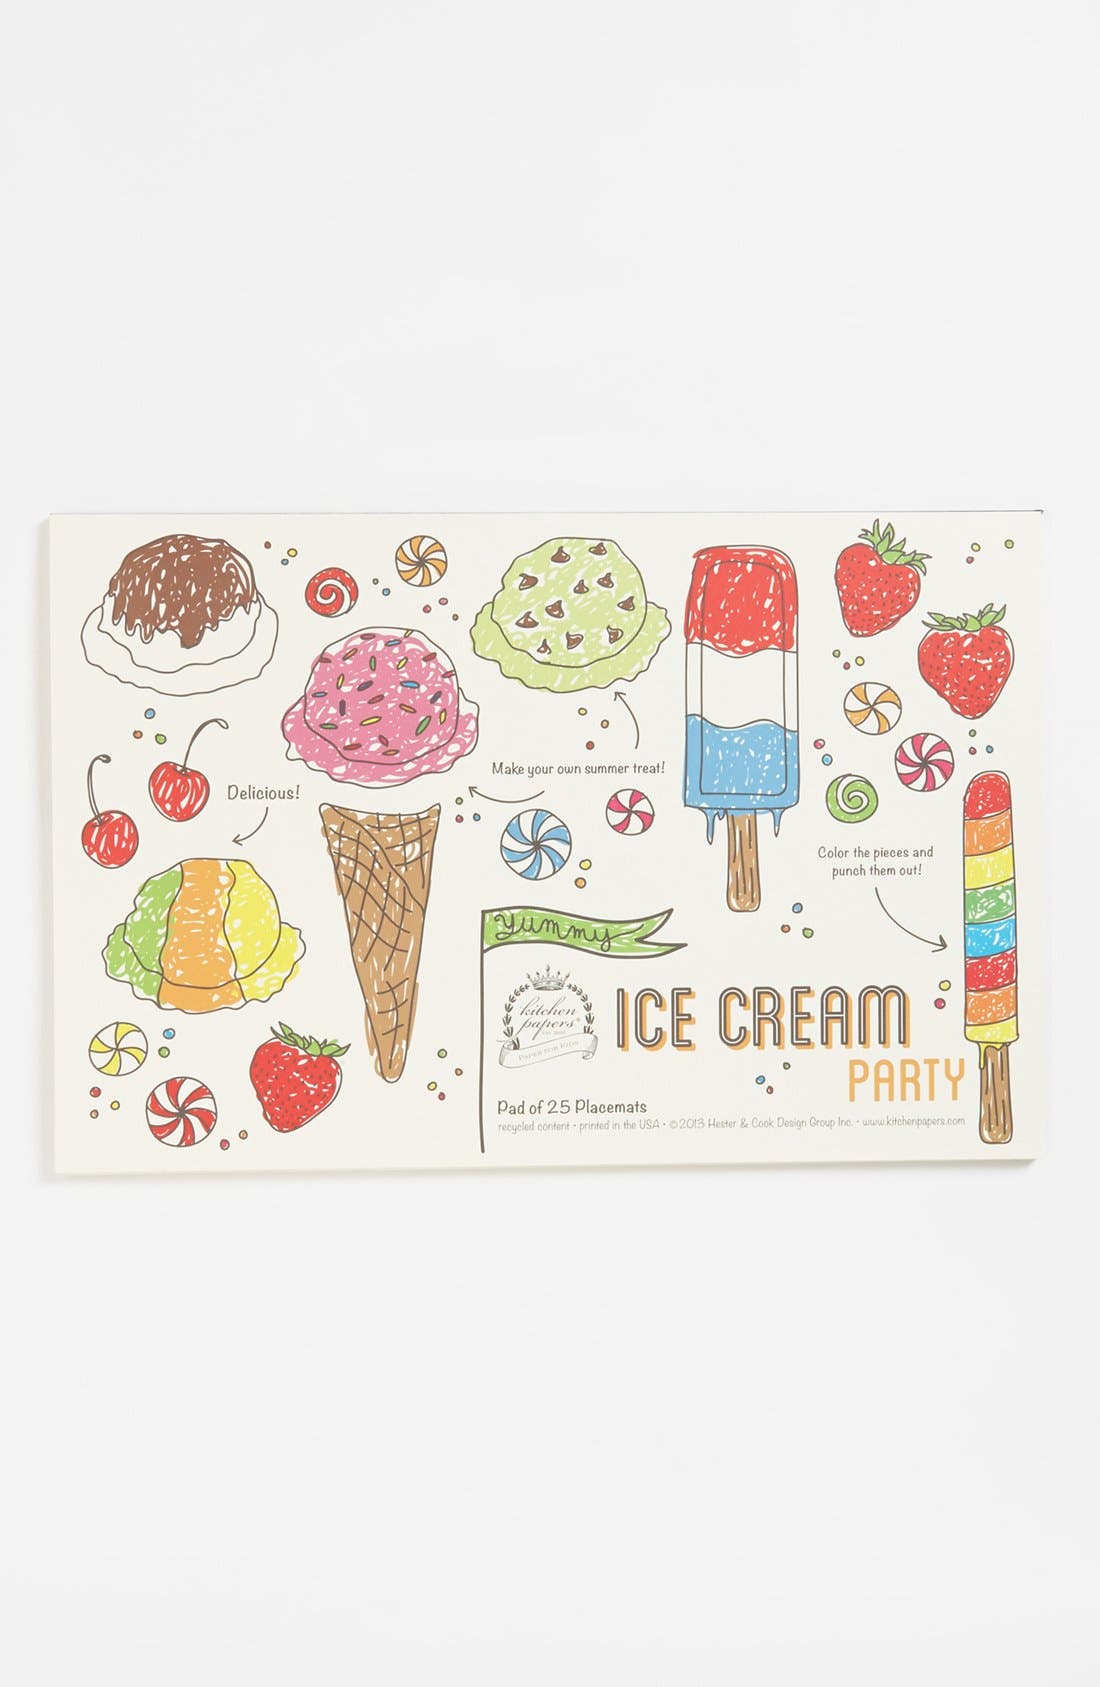 Main Image - Kitchen Papers by Cake 'Ice Cream Party' Kids Paper Placemat Pad